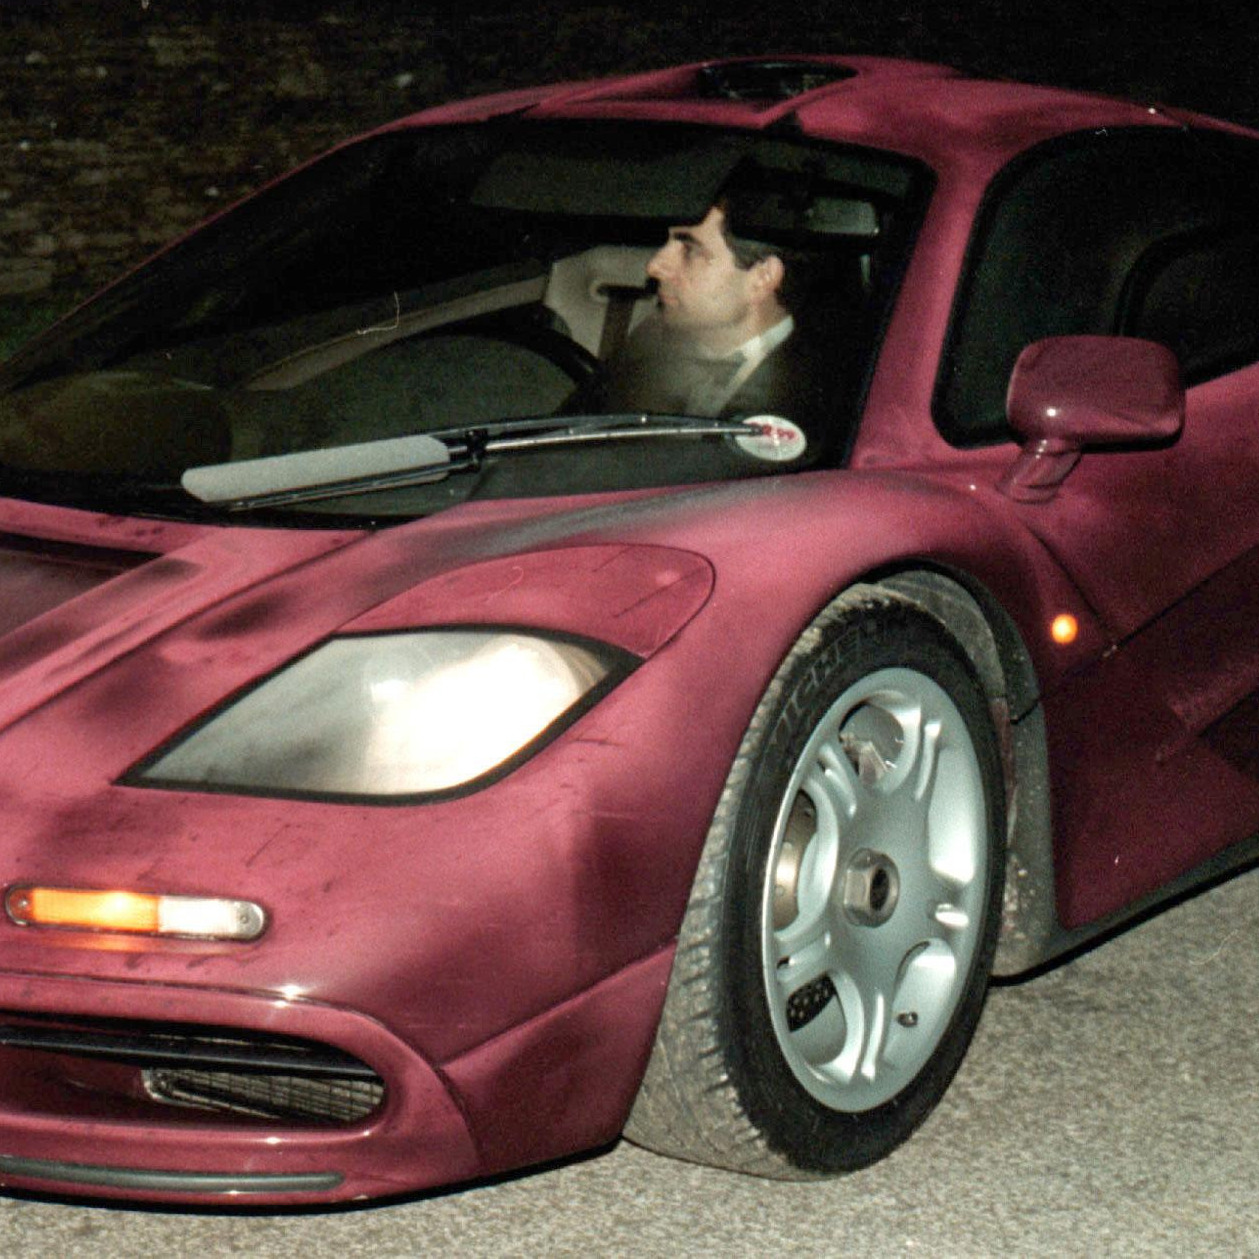 Before the crash: Rowan Atkinson at the wheel of his McLaren F1 in 1998.